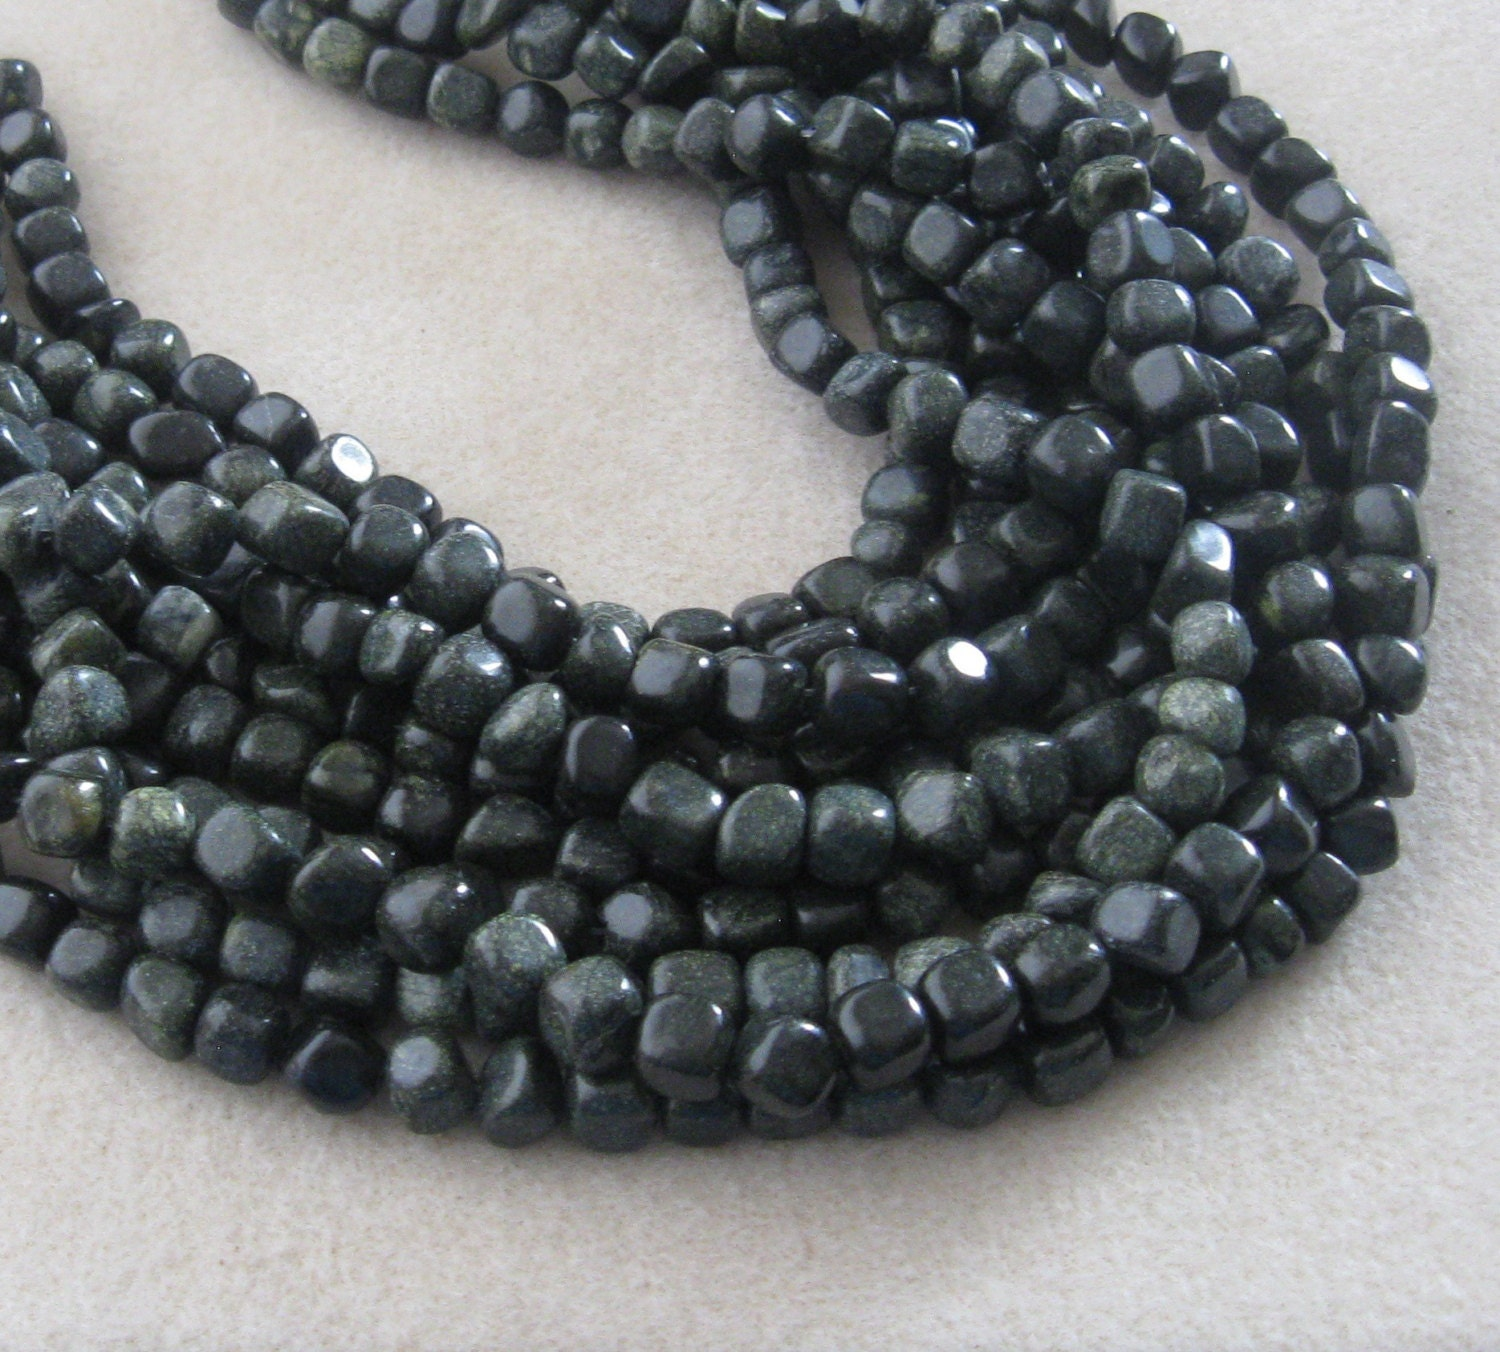 Russian Serpentine Pebble Beads, Gemstone Beads, Serpentine Beads ...